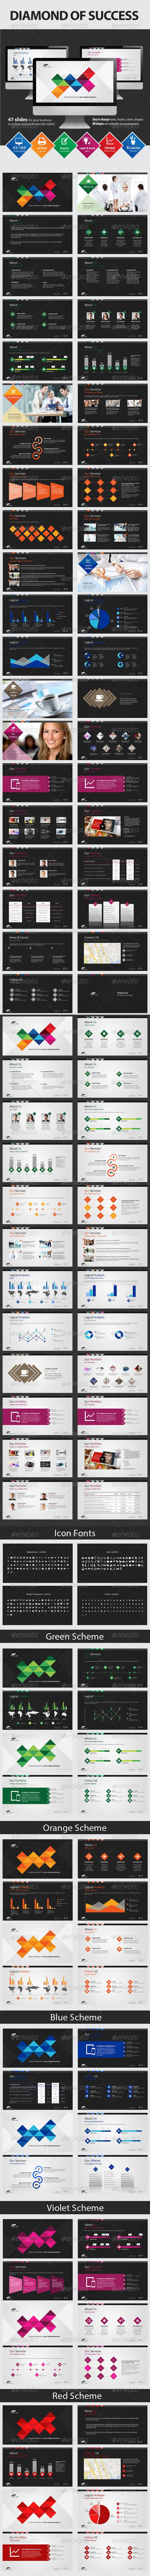 The Diamond of Success Powerpoint Presentation (Powerpoint Templates) #Powerpoint #Powerpoint_Template #Presentation